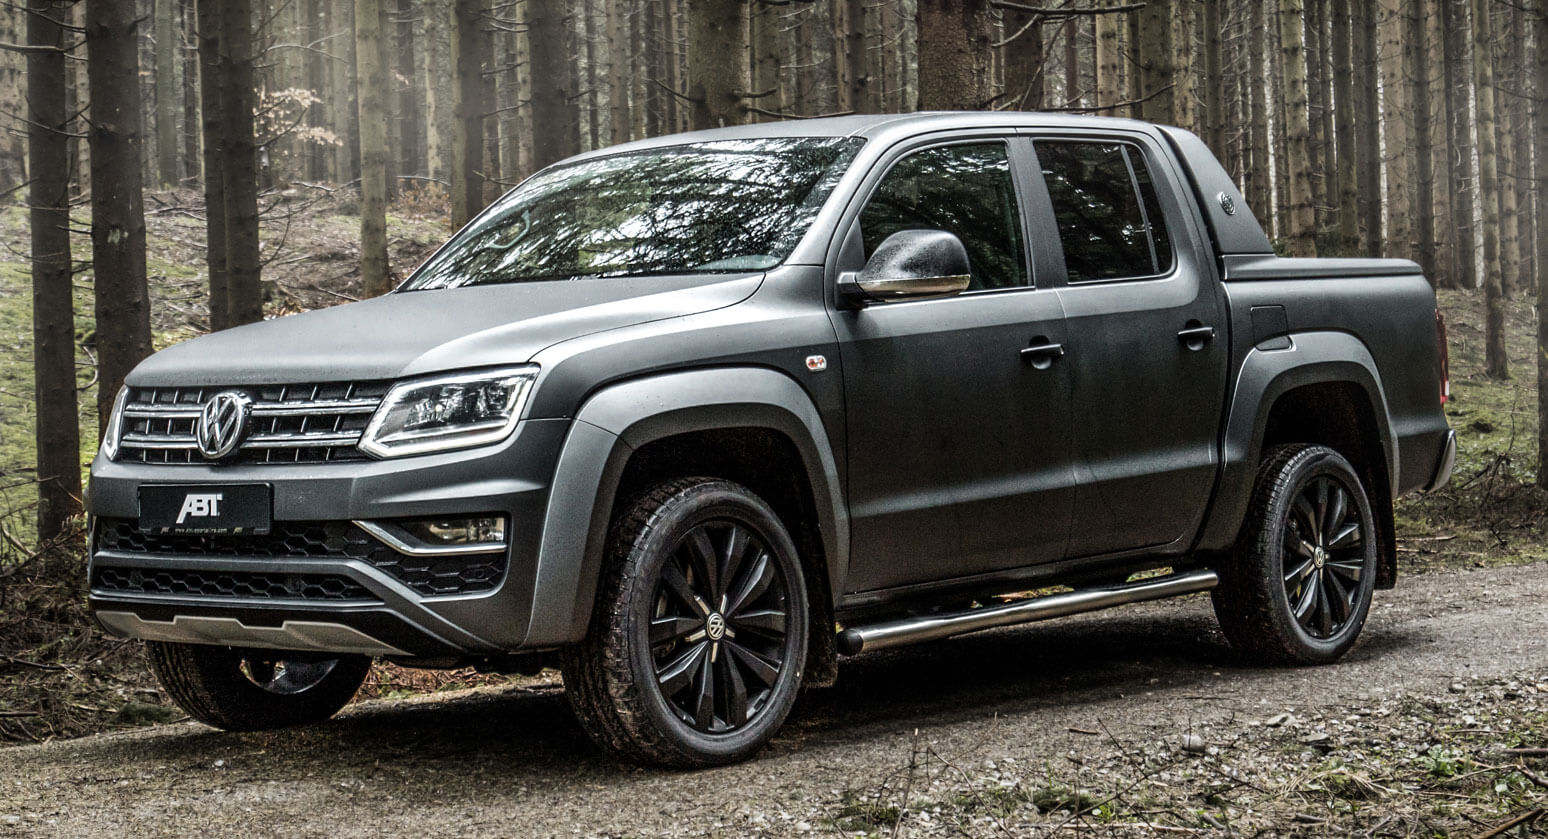 VW Amarok 3.0 V6 TDI Gets 47 HP Power Bump Thanks To ABT ...